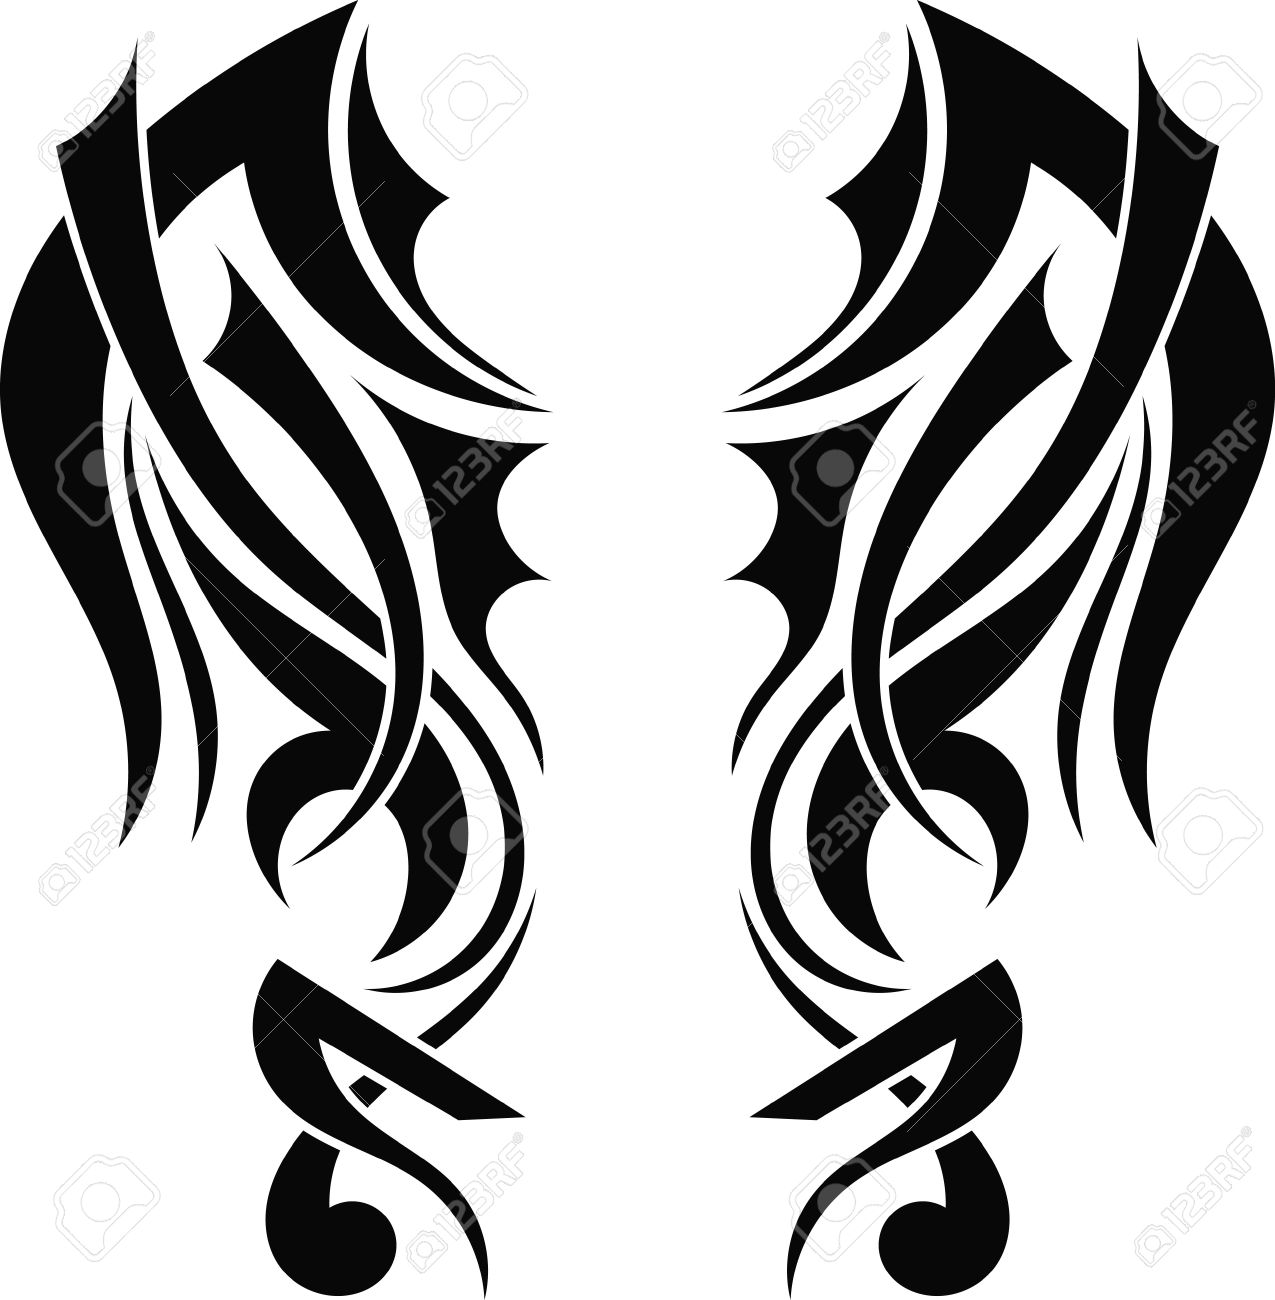 graphic design tribal tattoo wings royalty free cliparts vectors rh 123rf com  vector wing designs